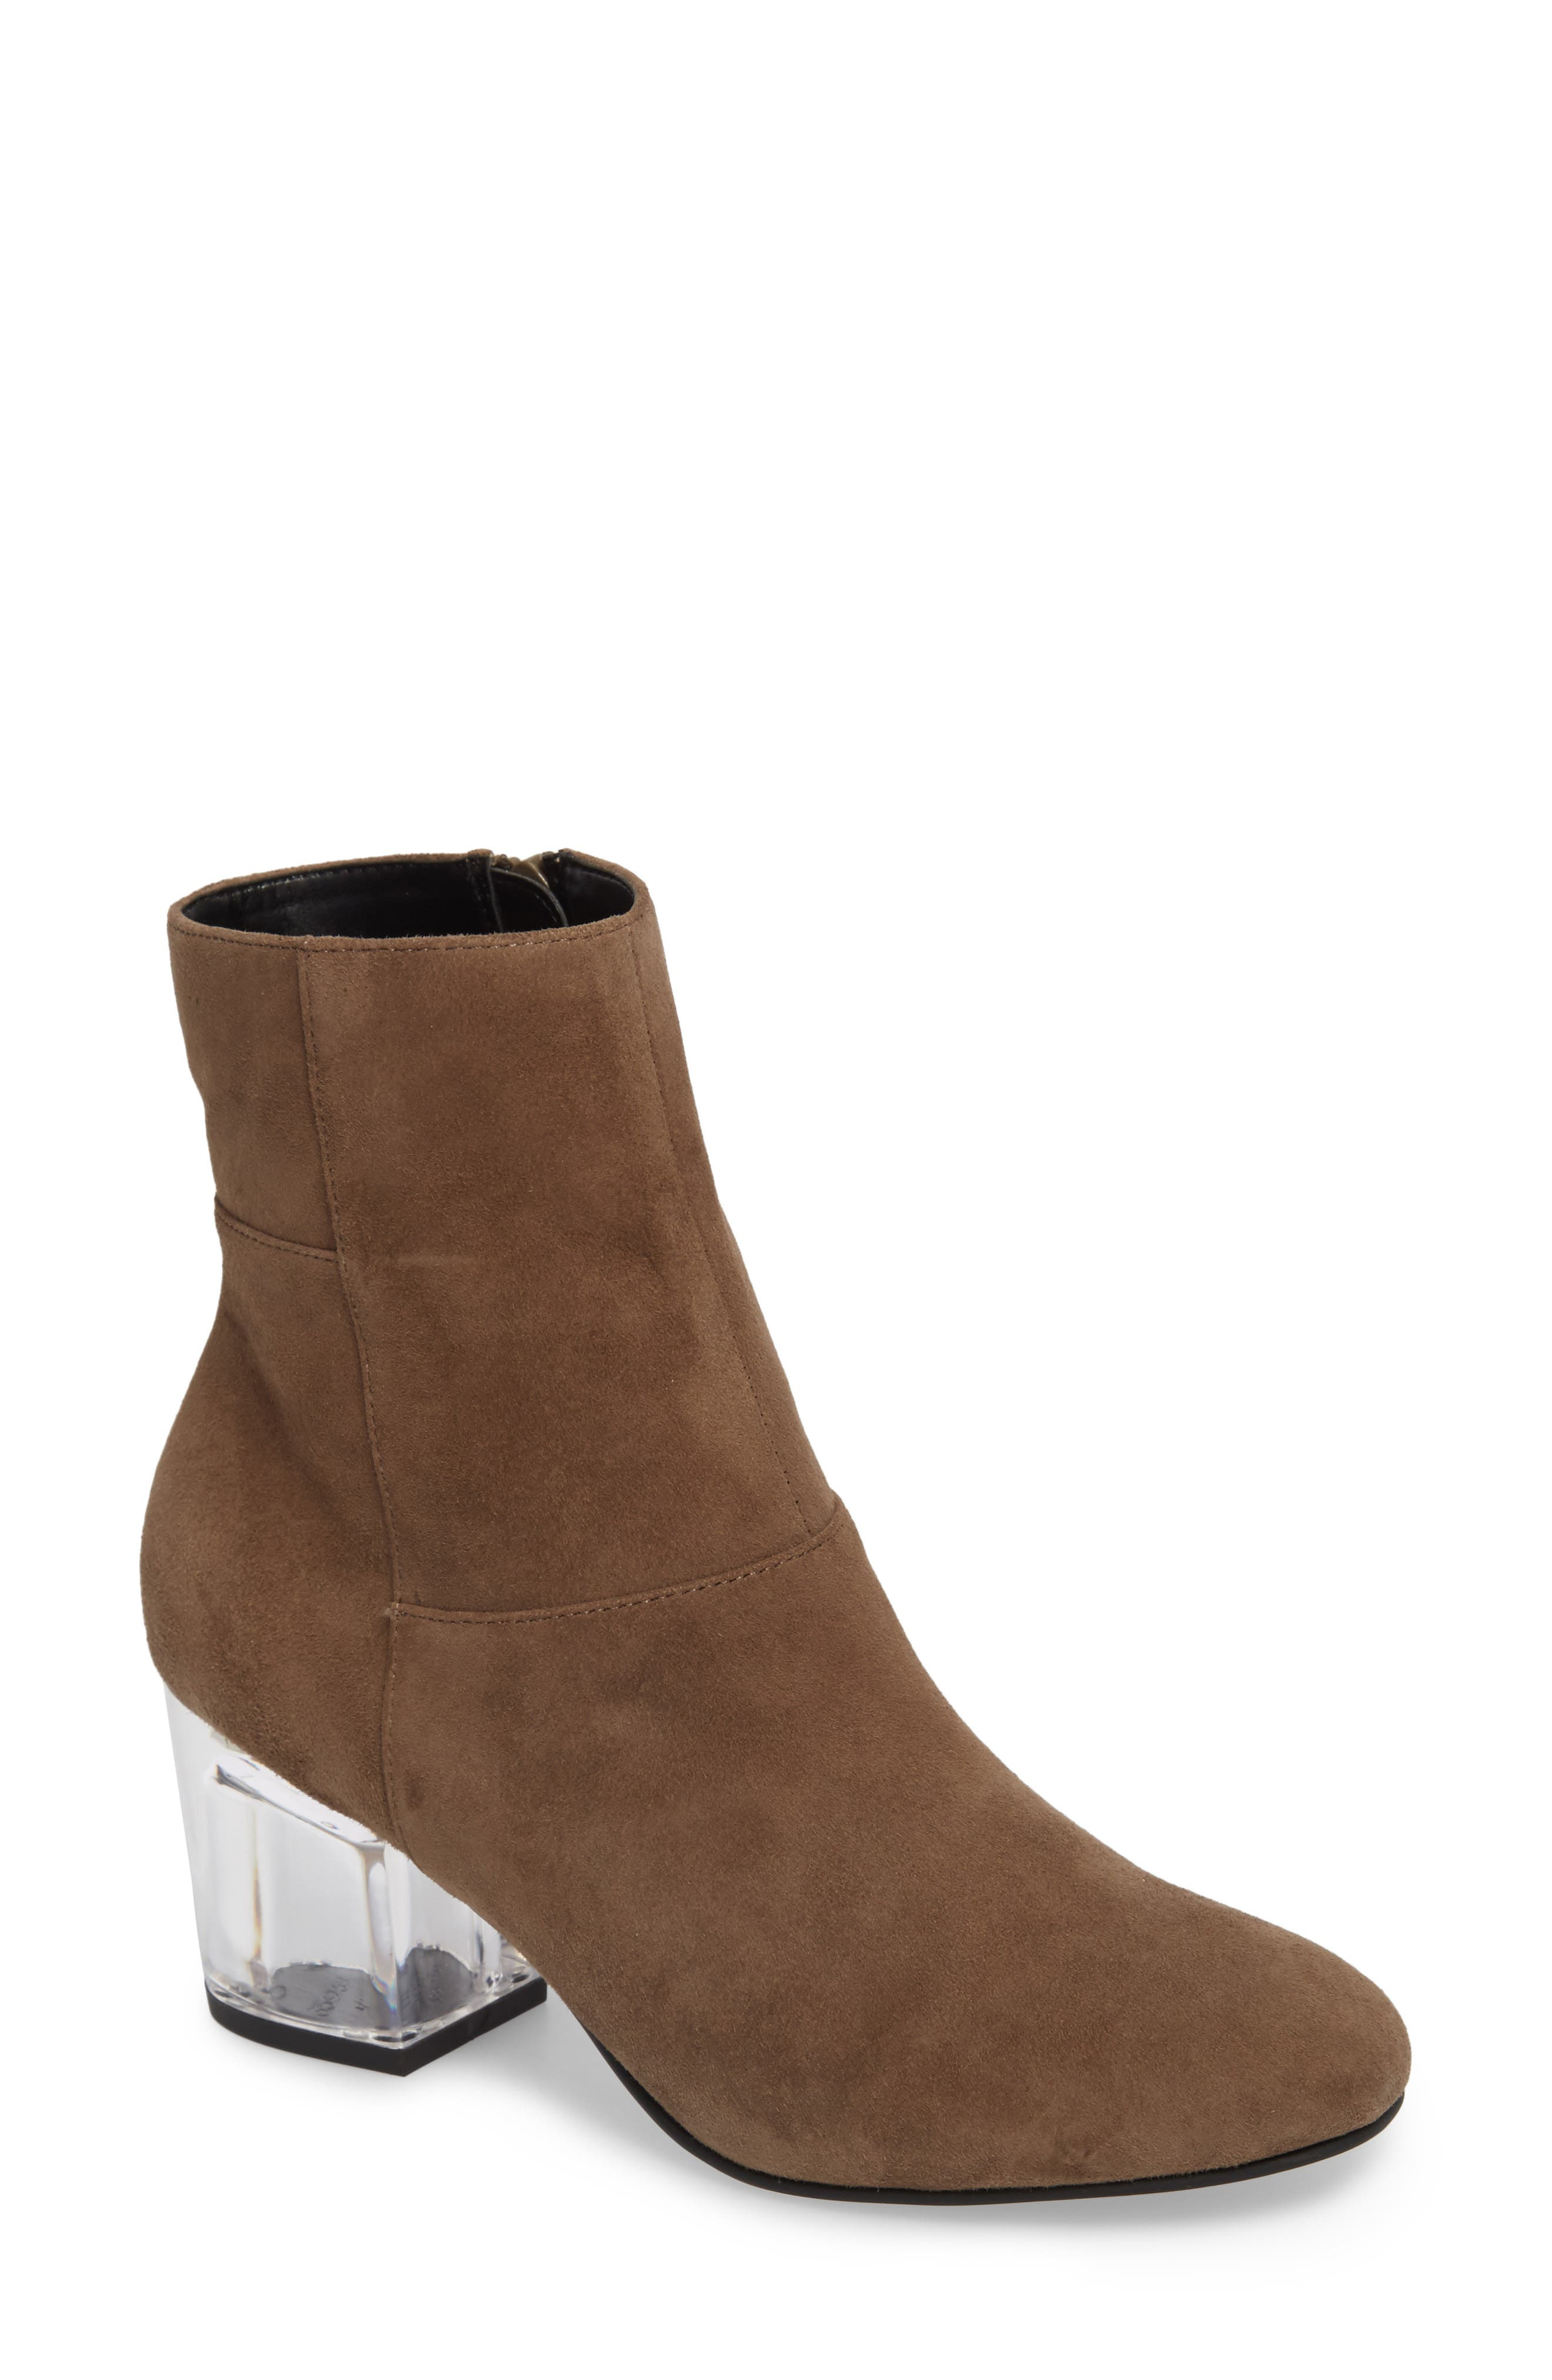 Dinah Bootie,                             Main thumbnail 1, color,                             Night Taupe